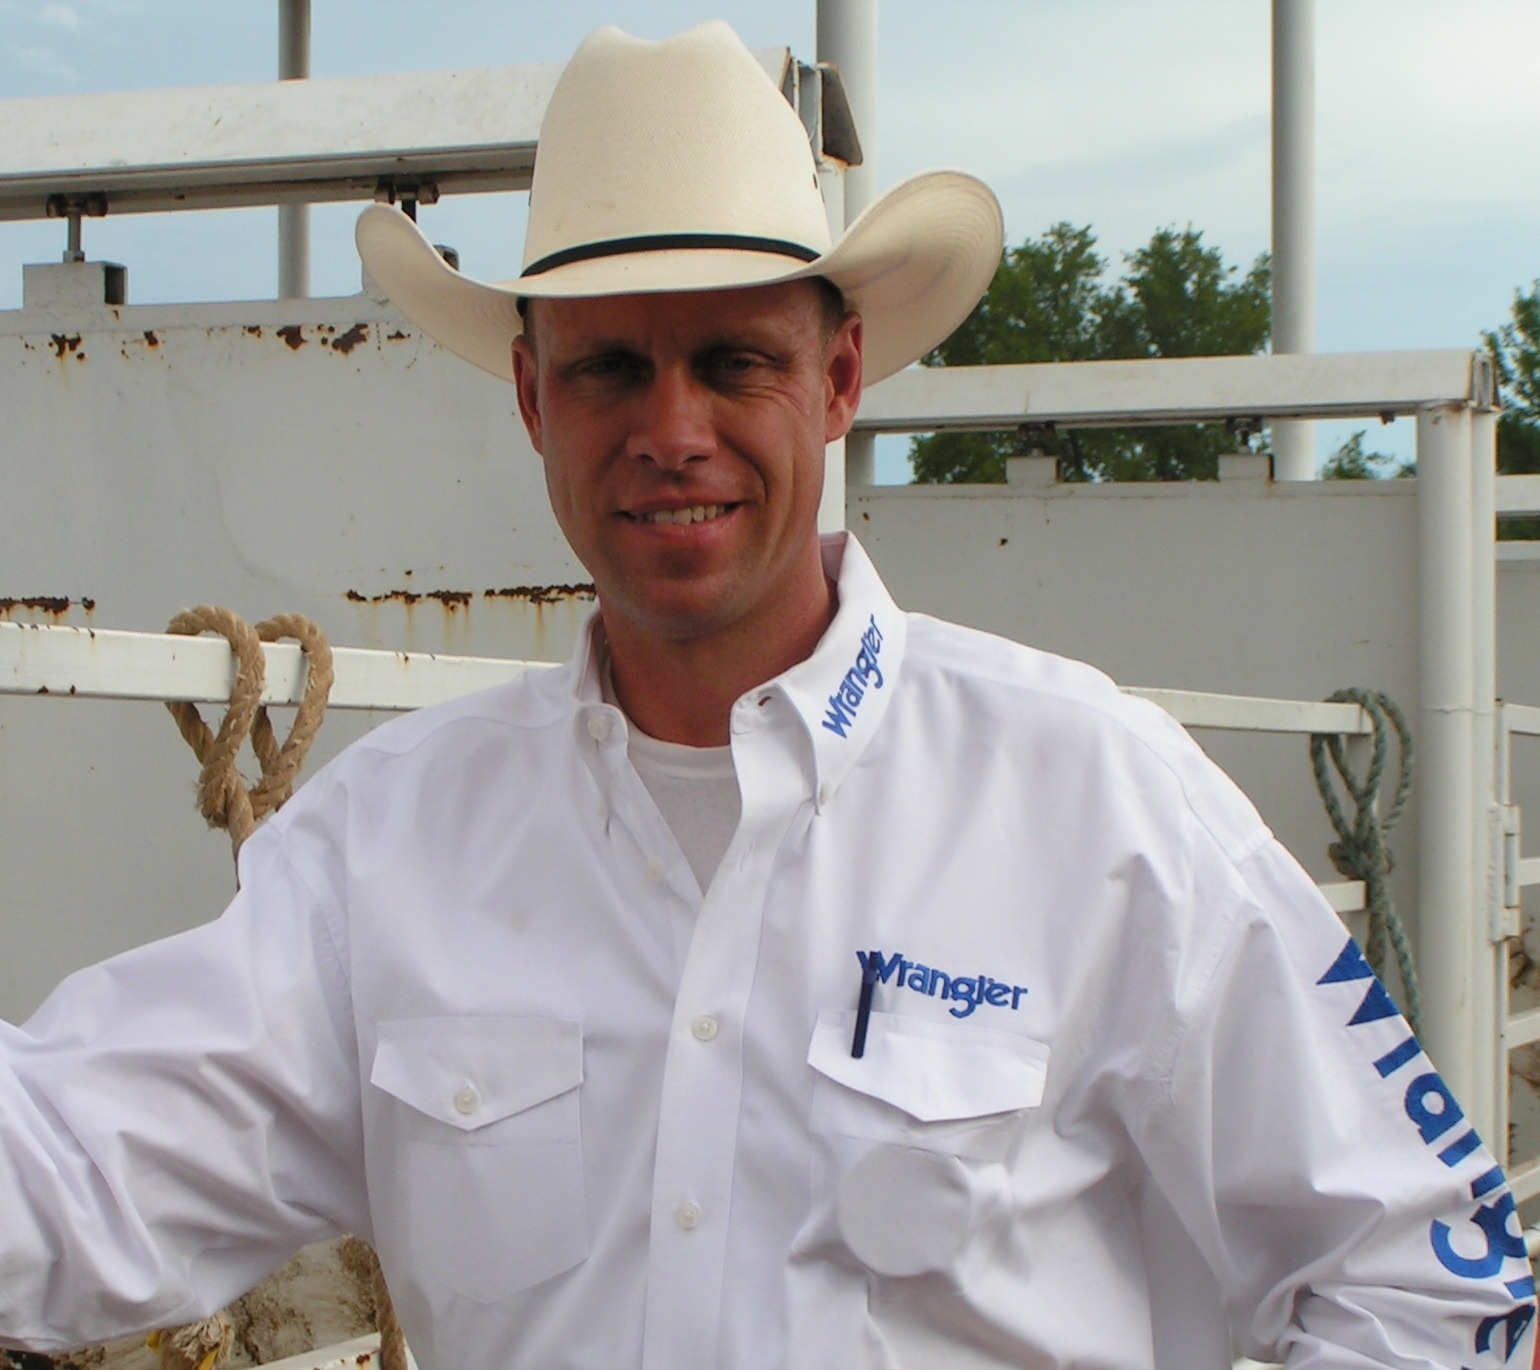 Troy Goodridge of Fort Scott, former champion professional bull rider, announced the Flint Hills Bull Blowout in Strong City Saturday night.